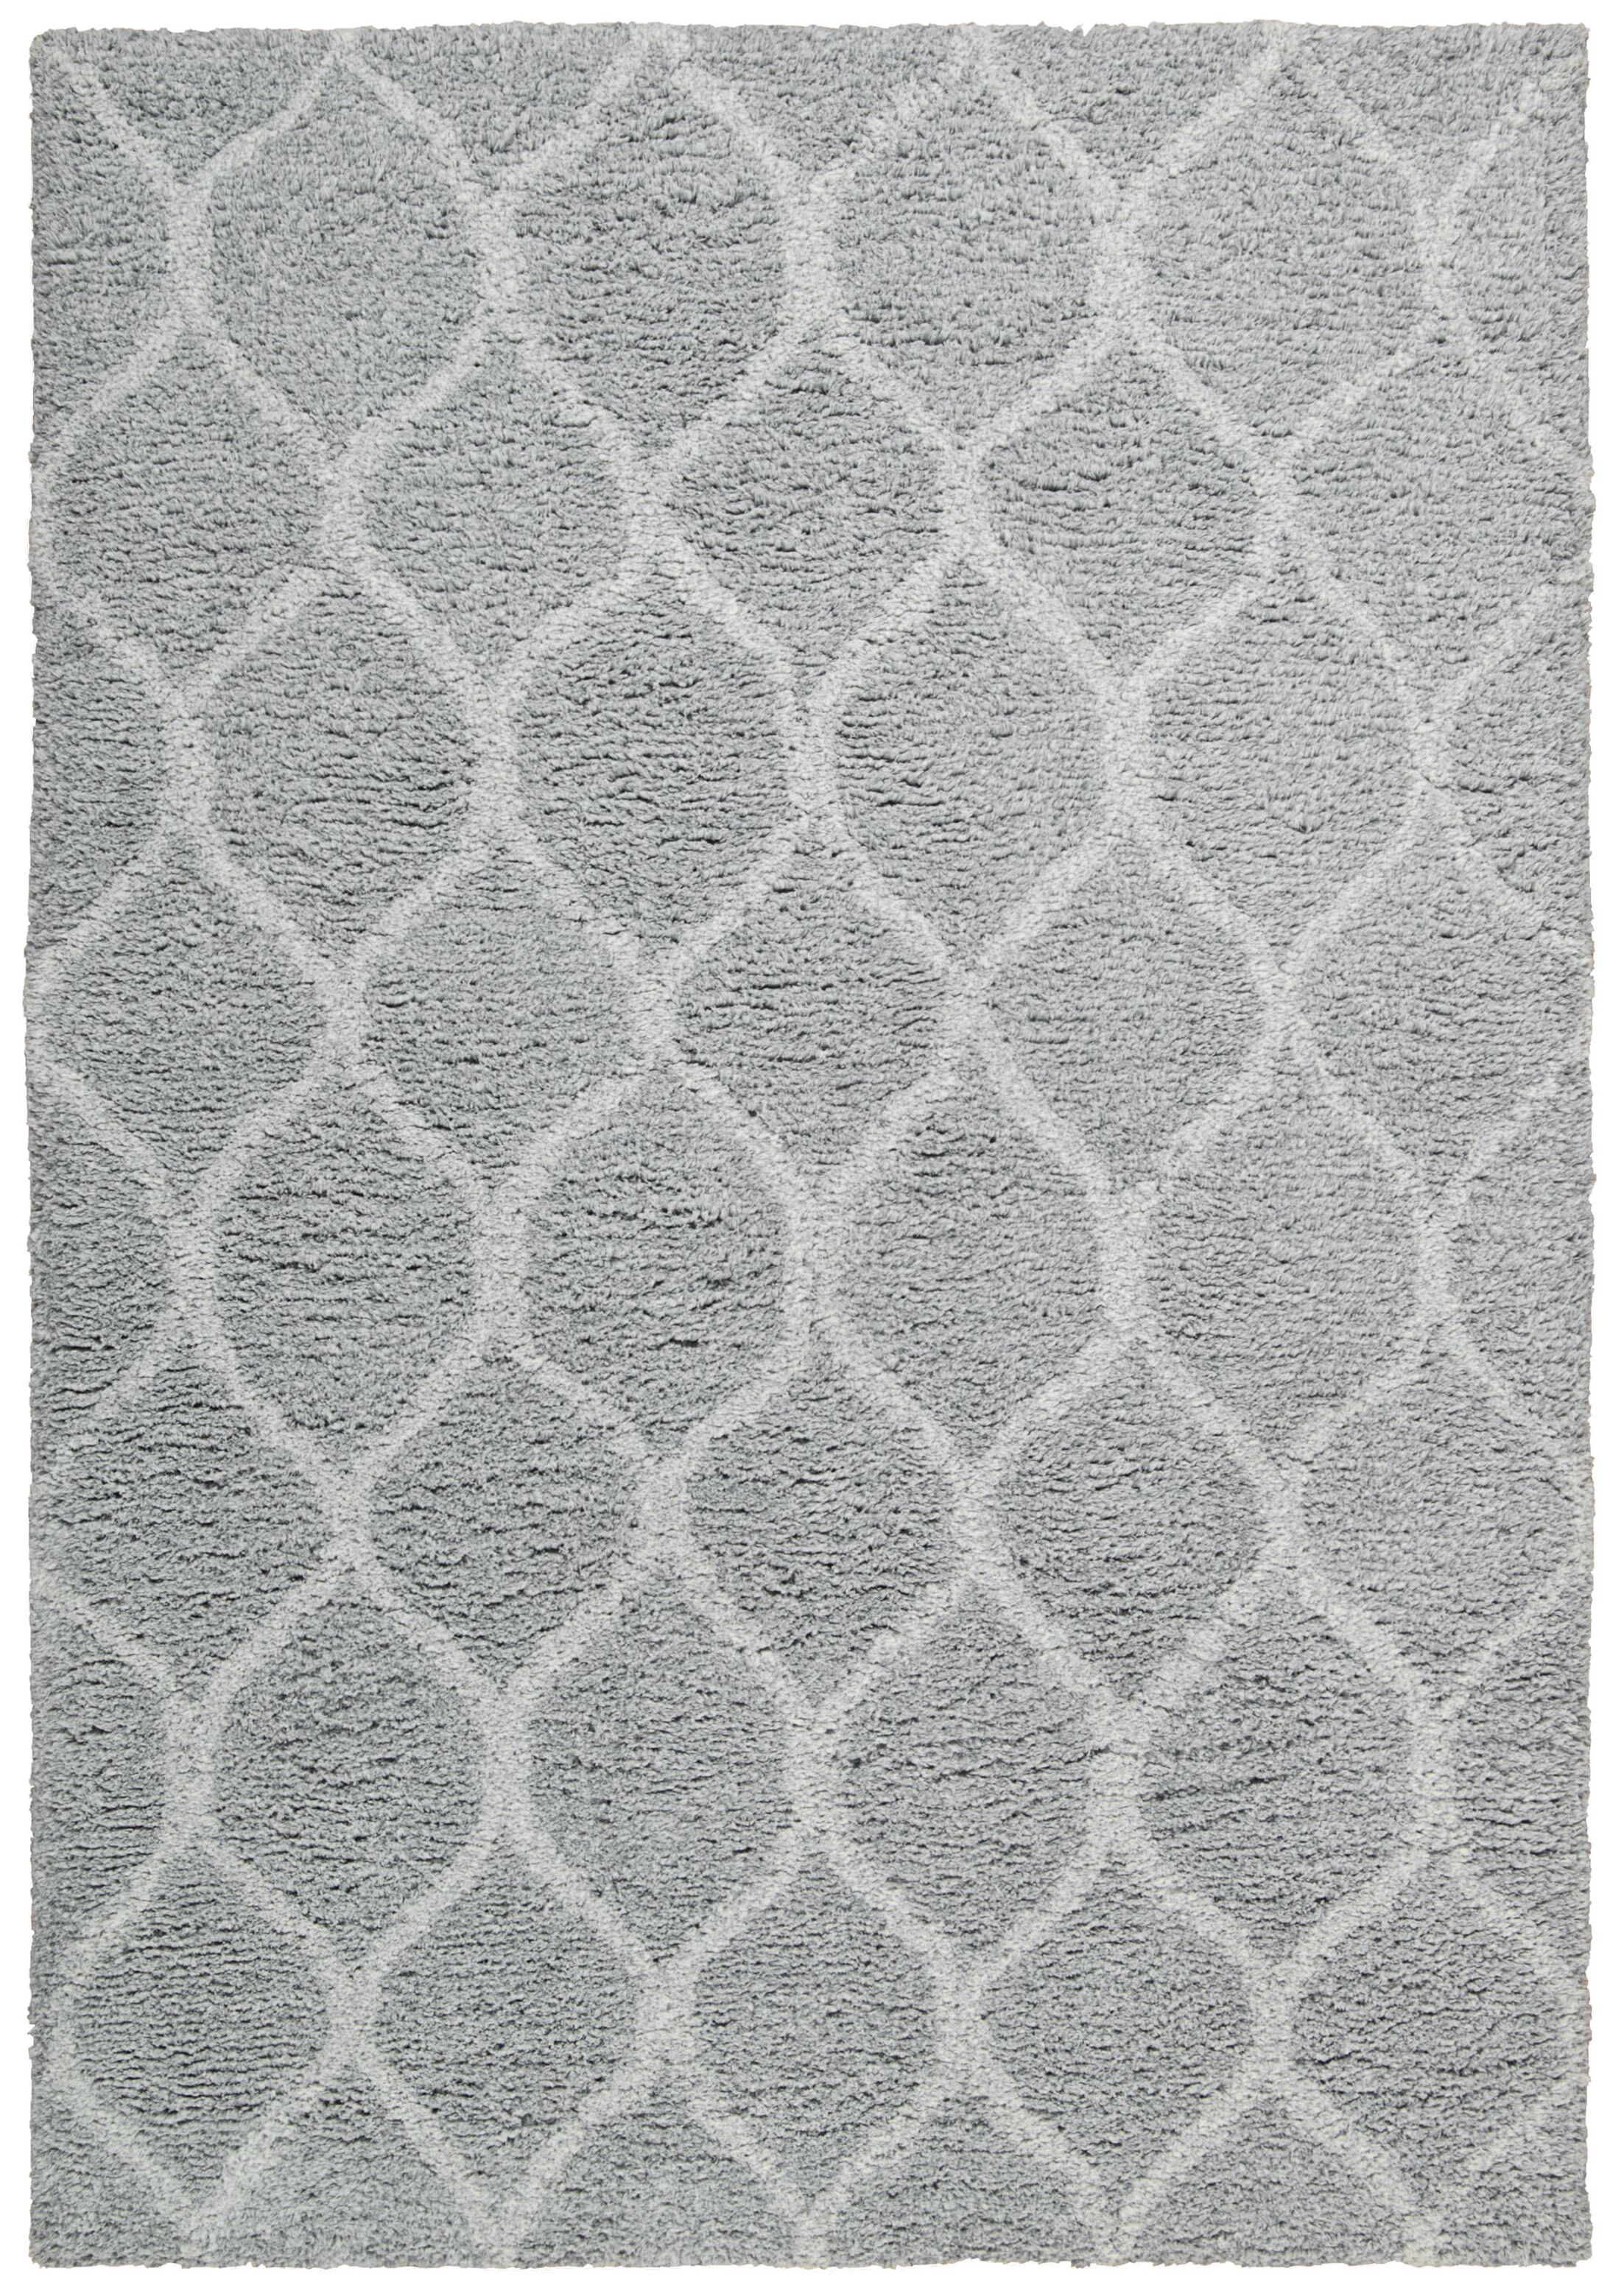 Searcy Hand-Tufted Gray Area Rug Rug Size: Rectangle 5' x 7'